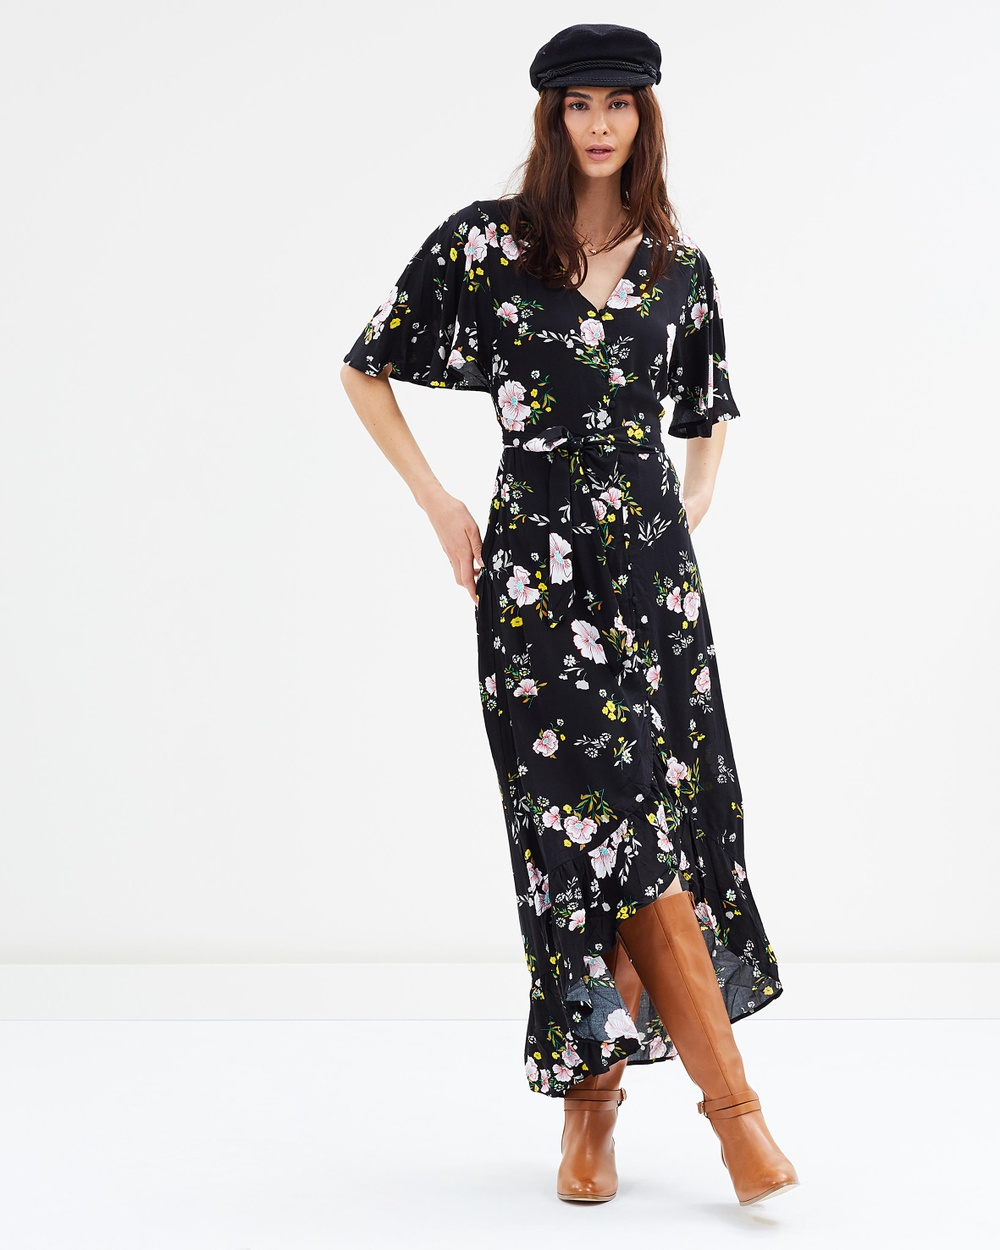 Cotton On Woven Dallas Cape Sleeve Maxi Dress Printed Dresses Sharon Floral Black Woven Dallas Cape Sleeve Maxi Dress